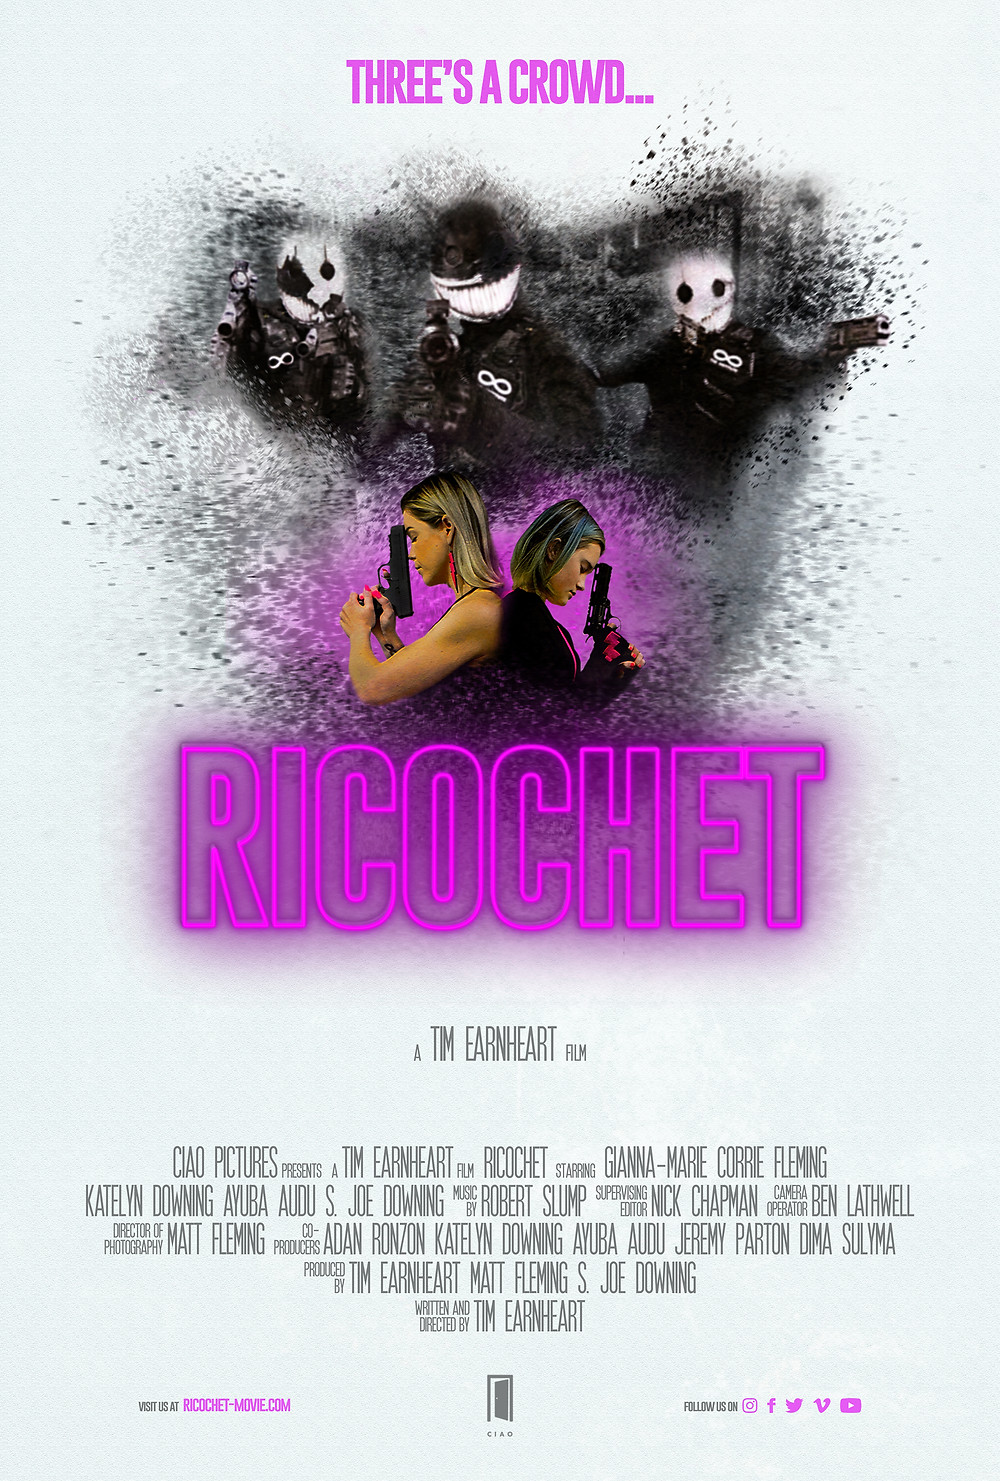 Ricochet short movie poster